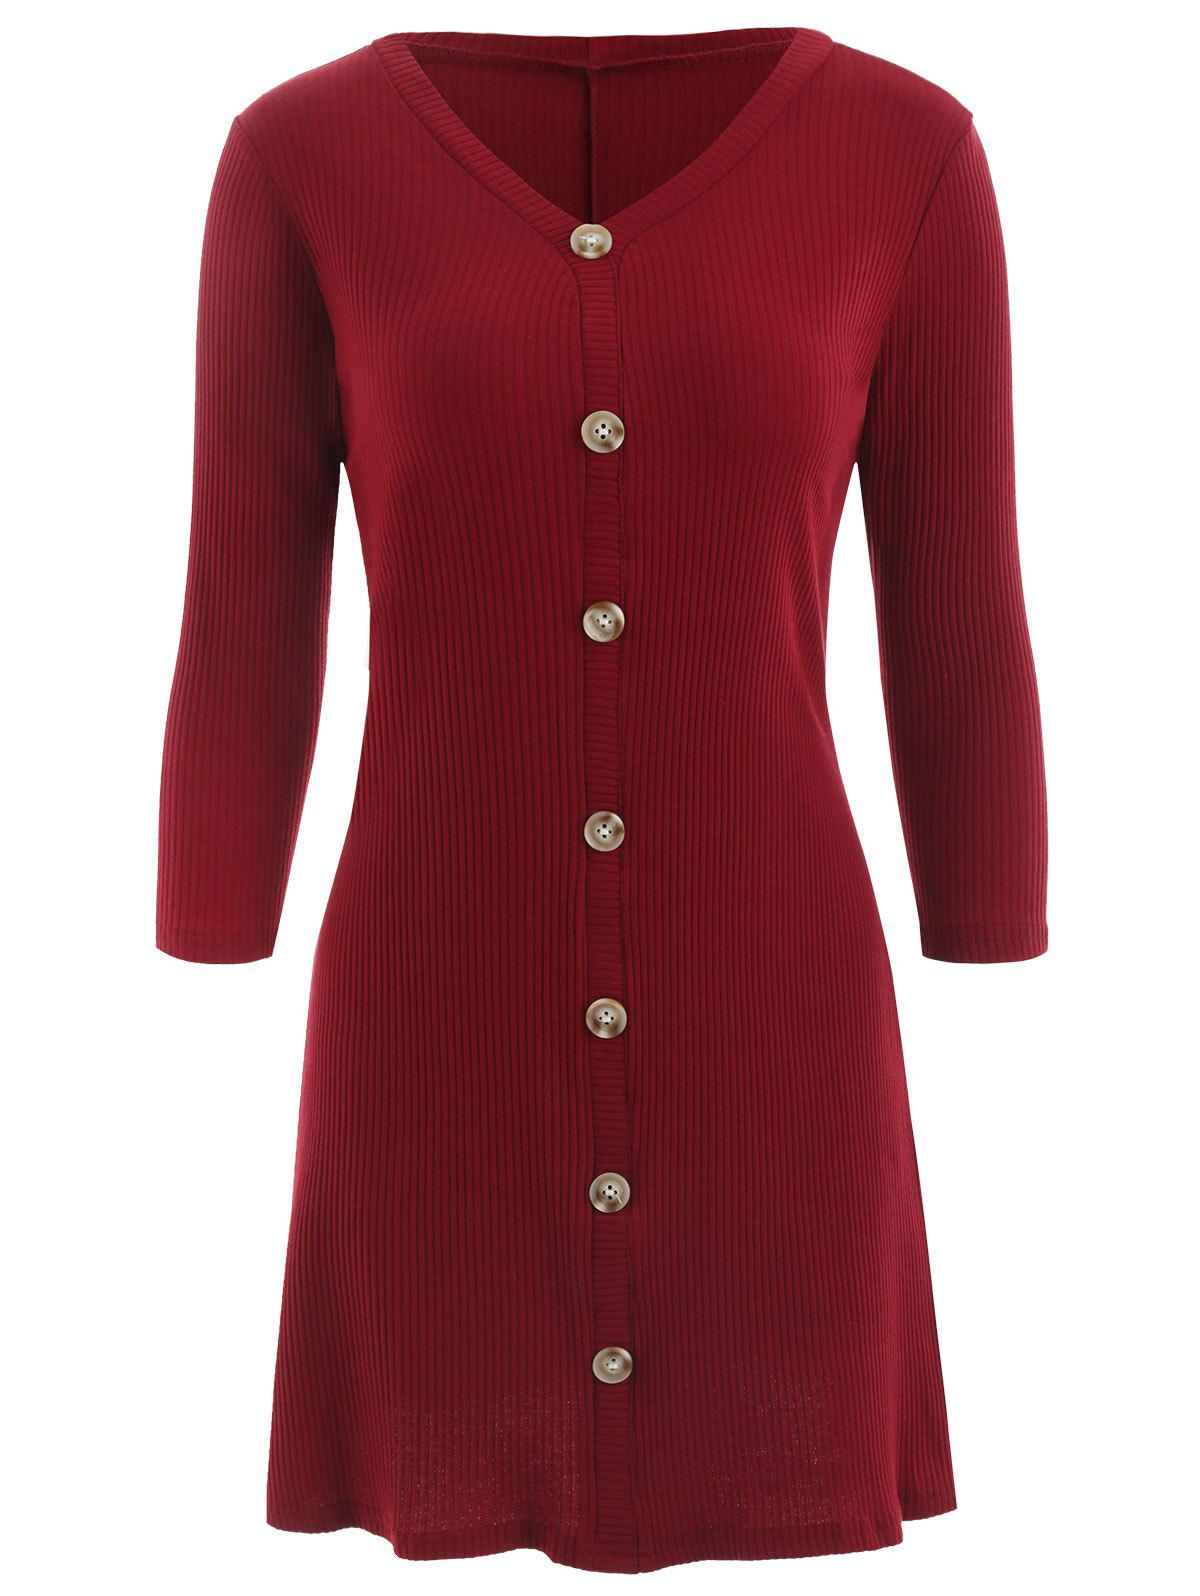 Ribbed Dress with Buttons - RED WINE XL